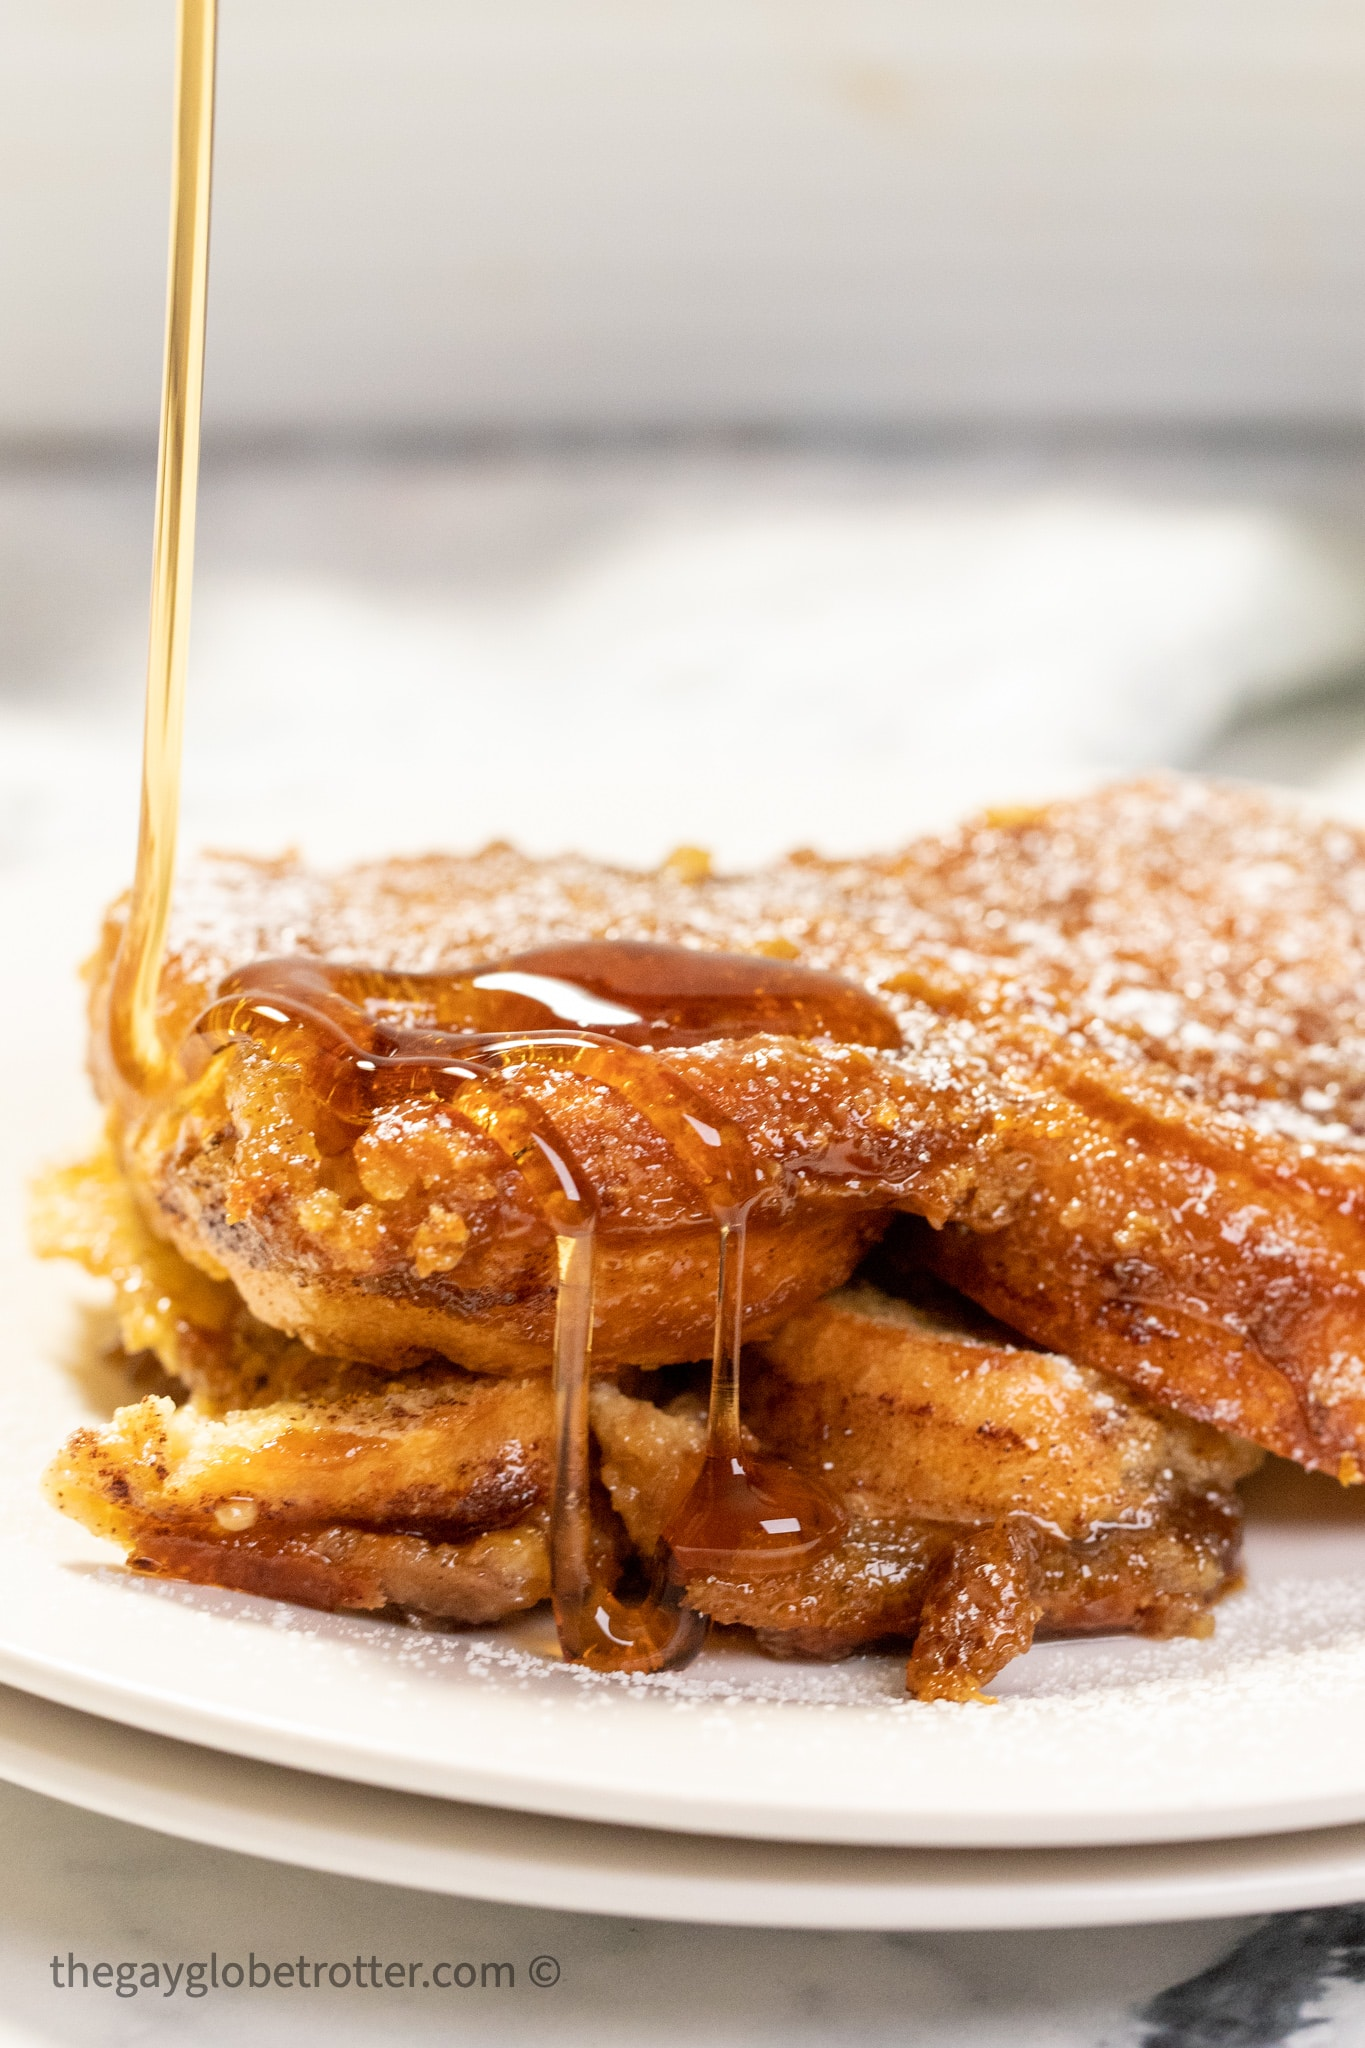 Syrup being drizzled over creme brulee french toast.